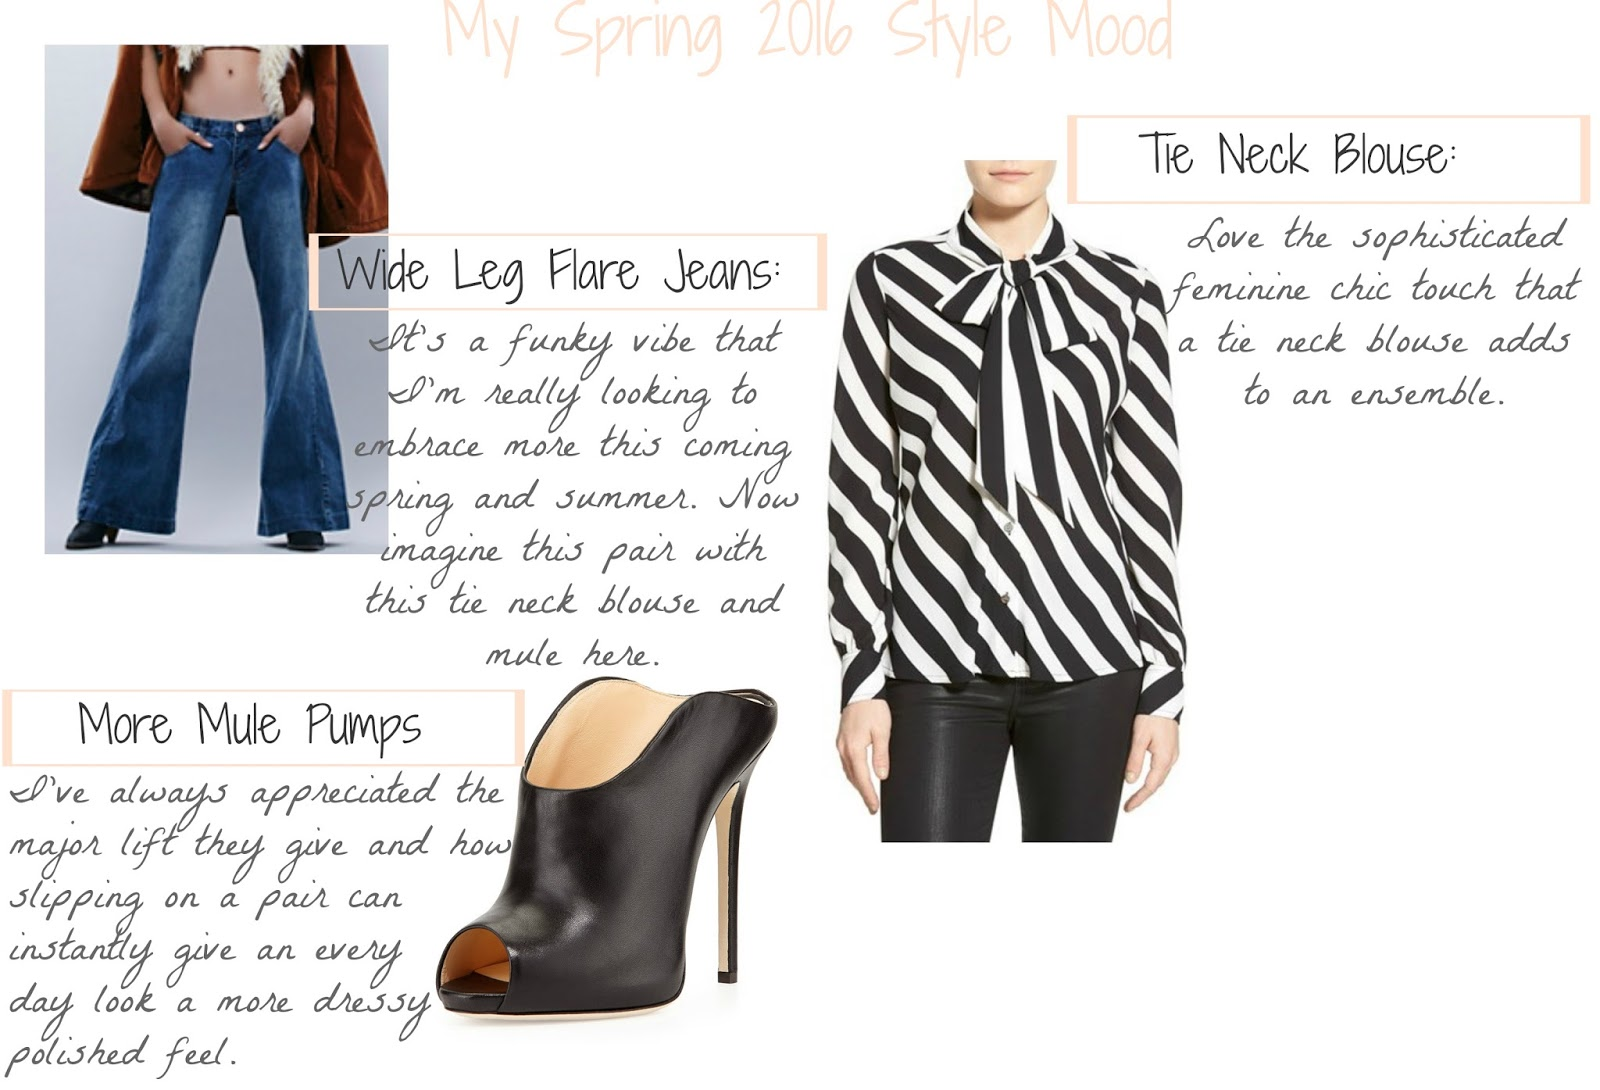 Spring-2016-Fashion-Style-Mood-Flare-Jeans-Tie-Neck-Blouse-Mules-Clogs